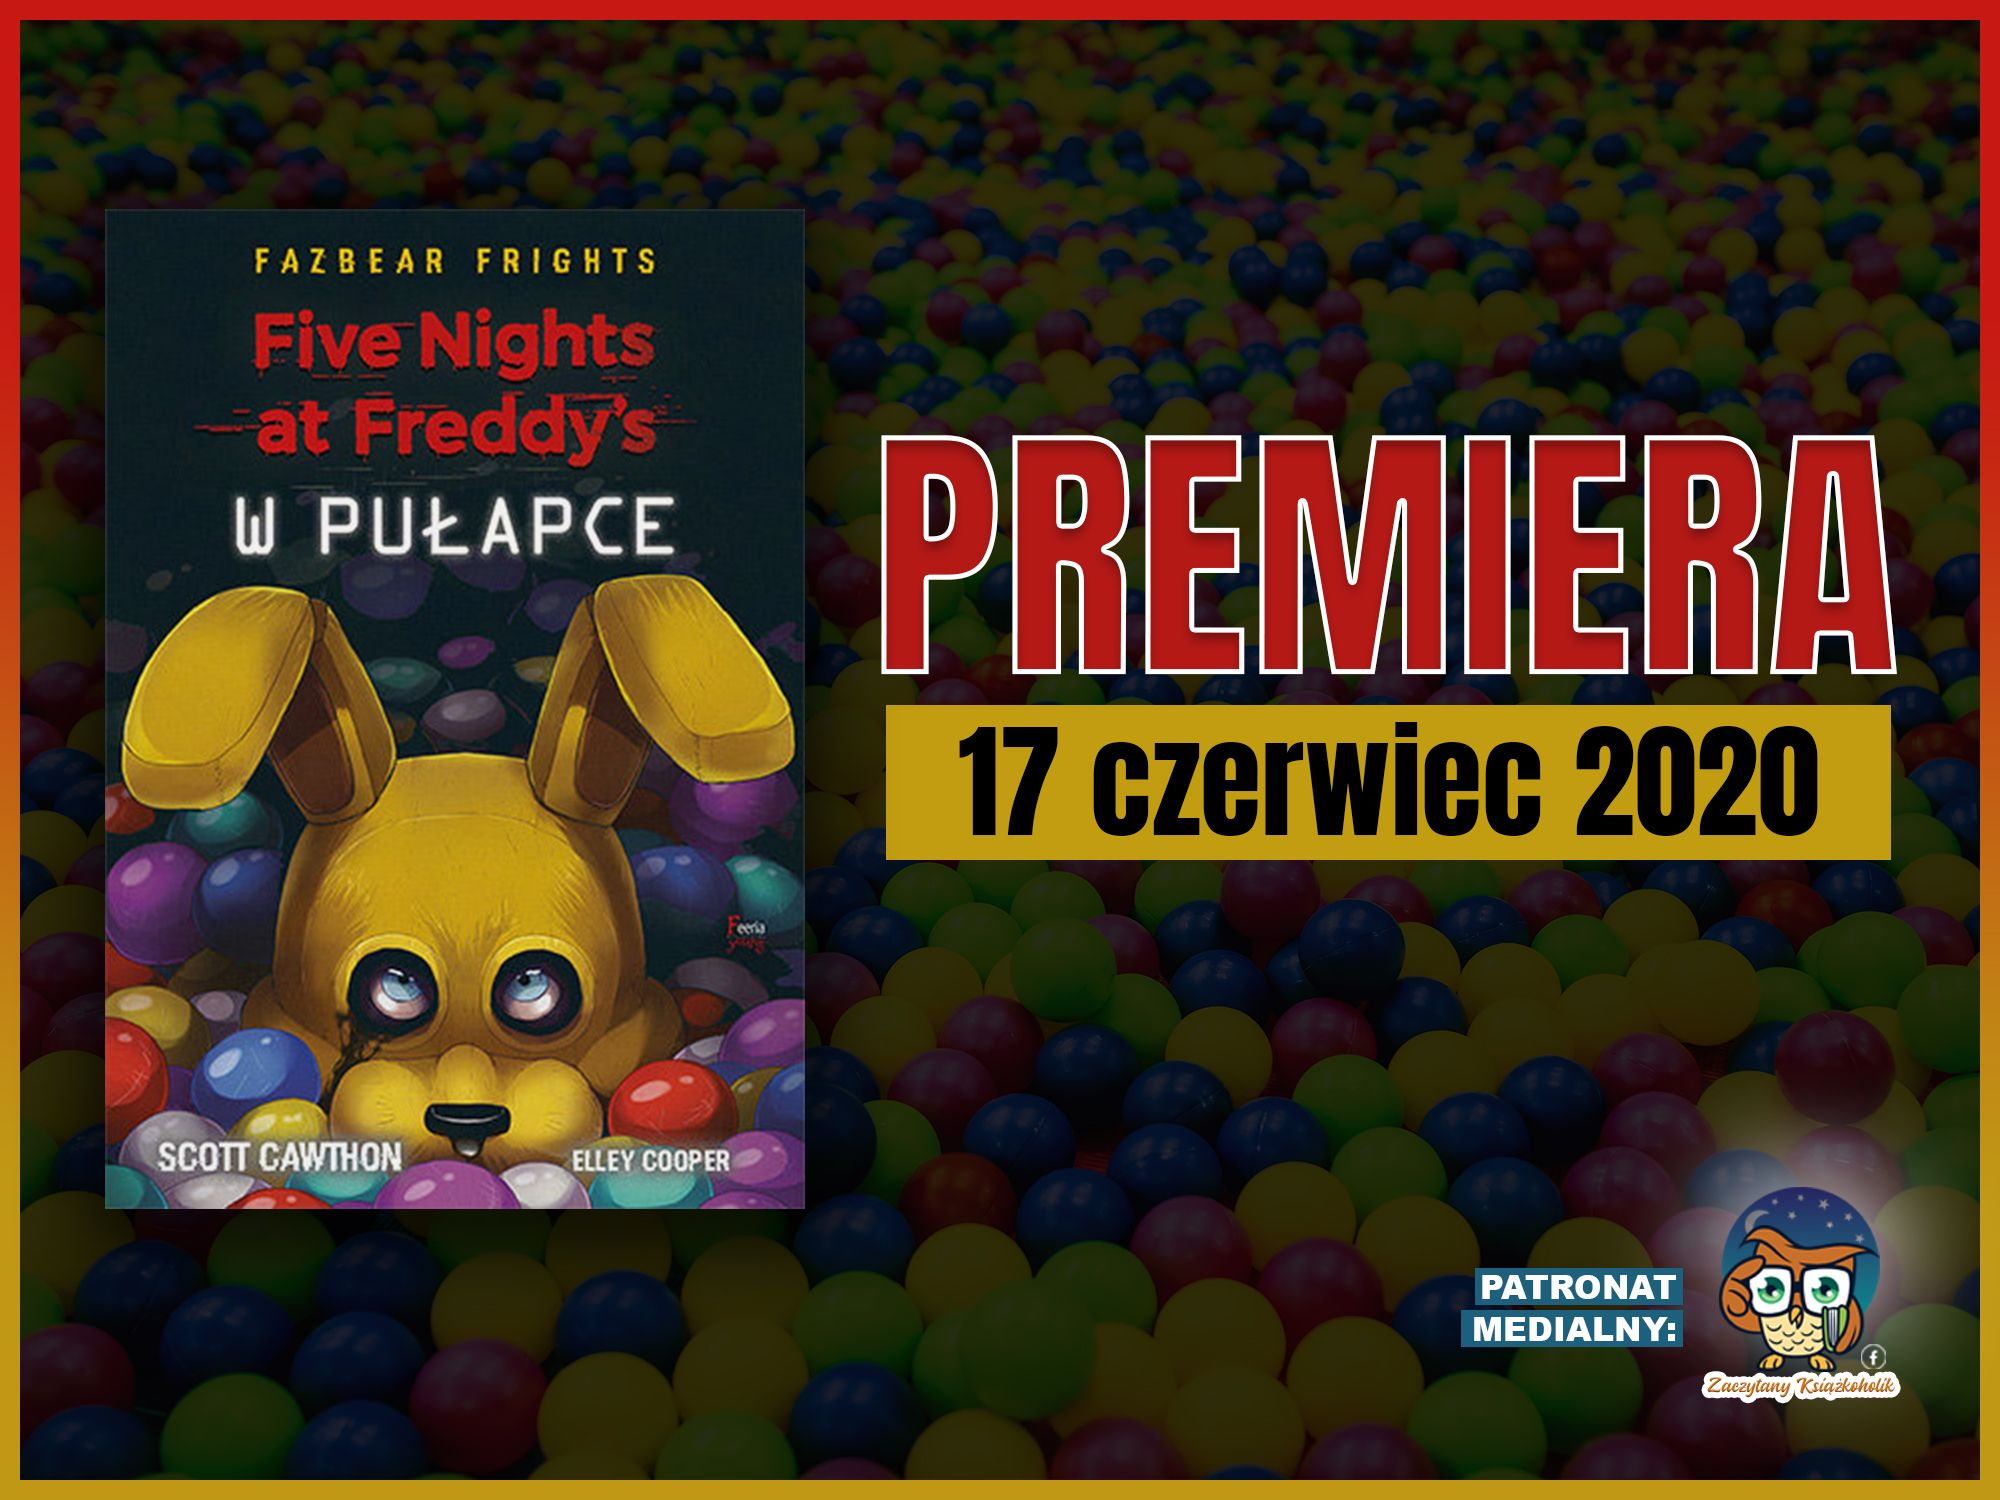 W pułapce. Five Nights at Freddy's